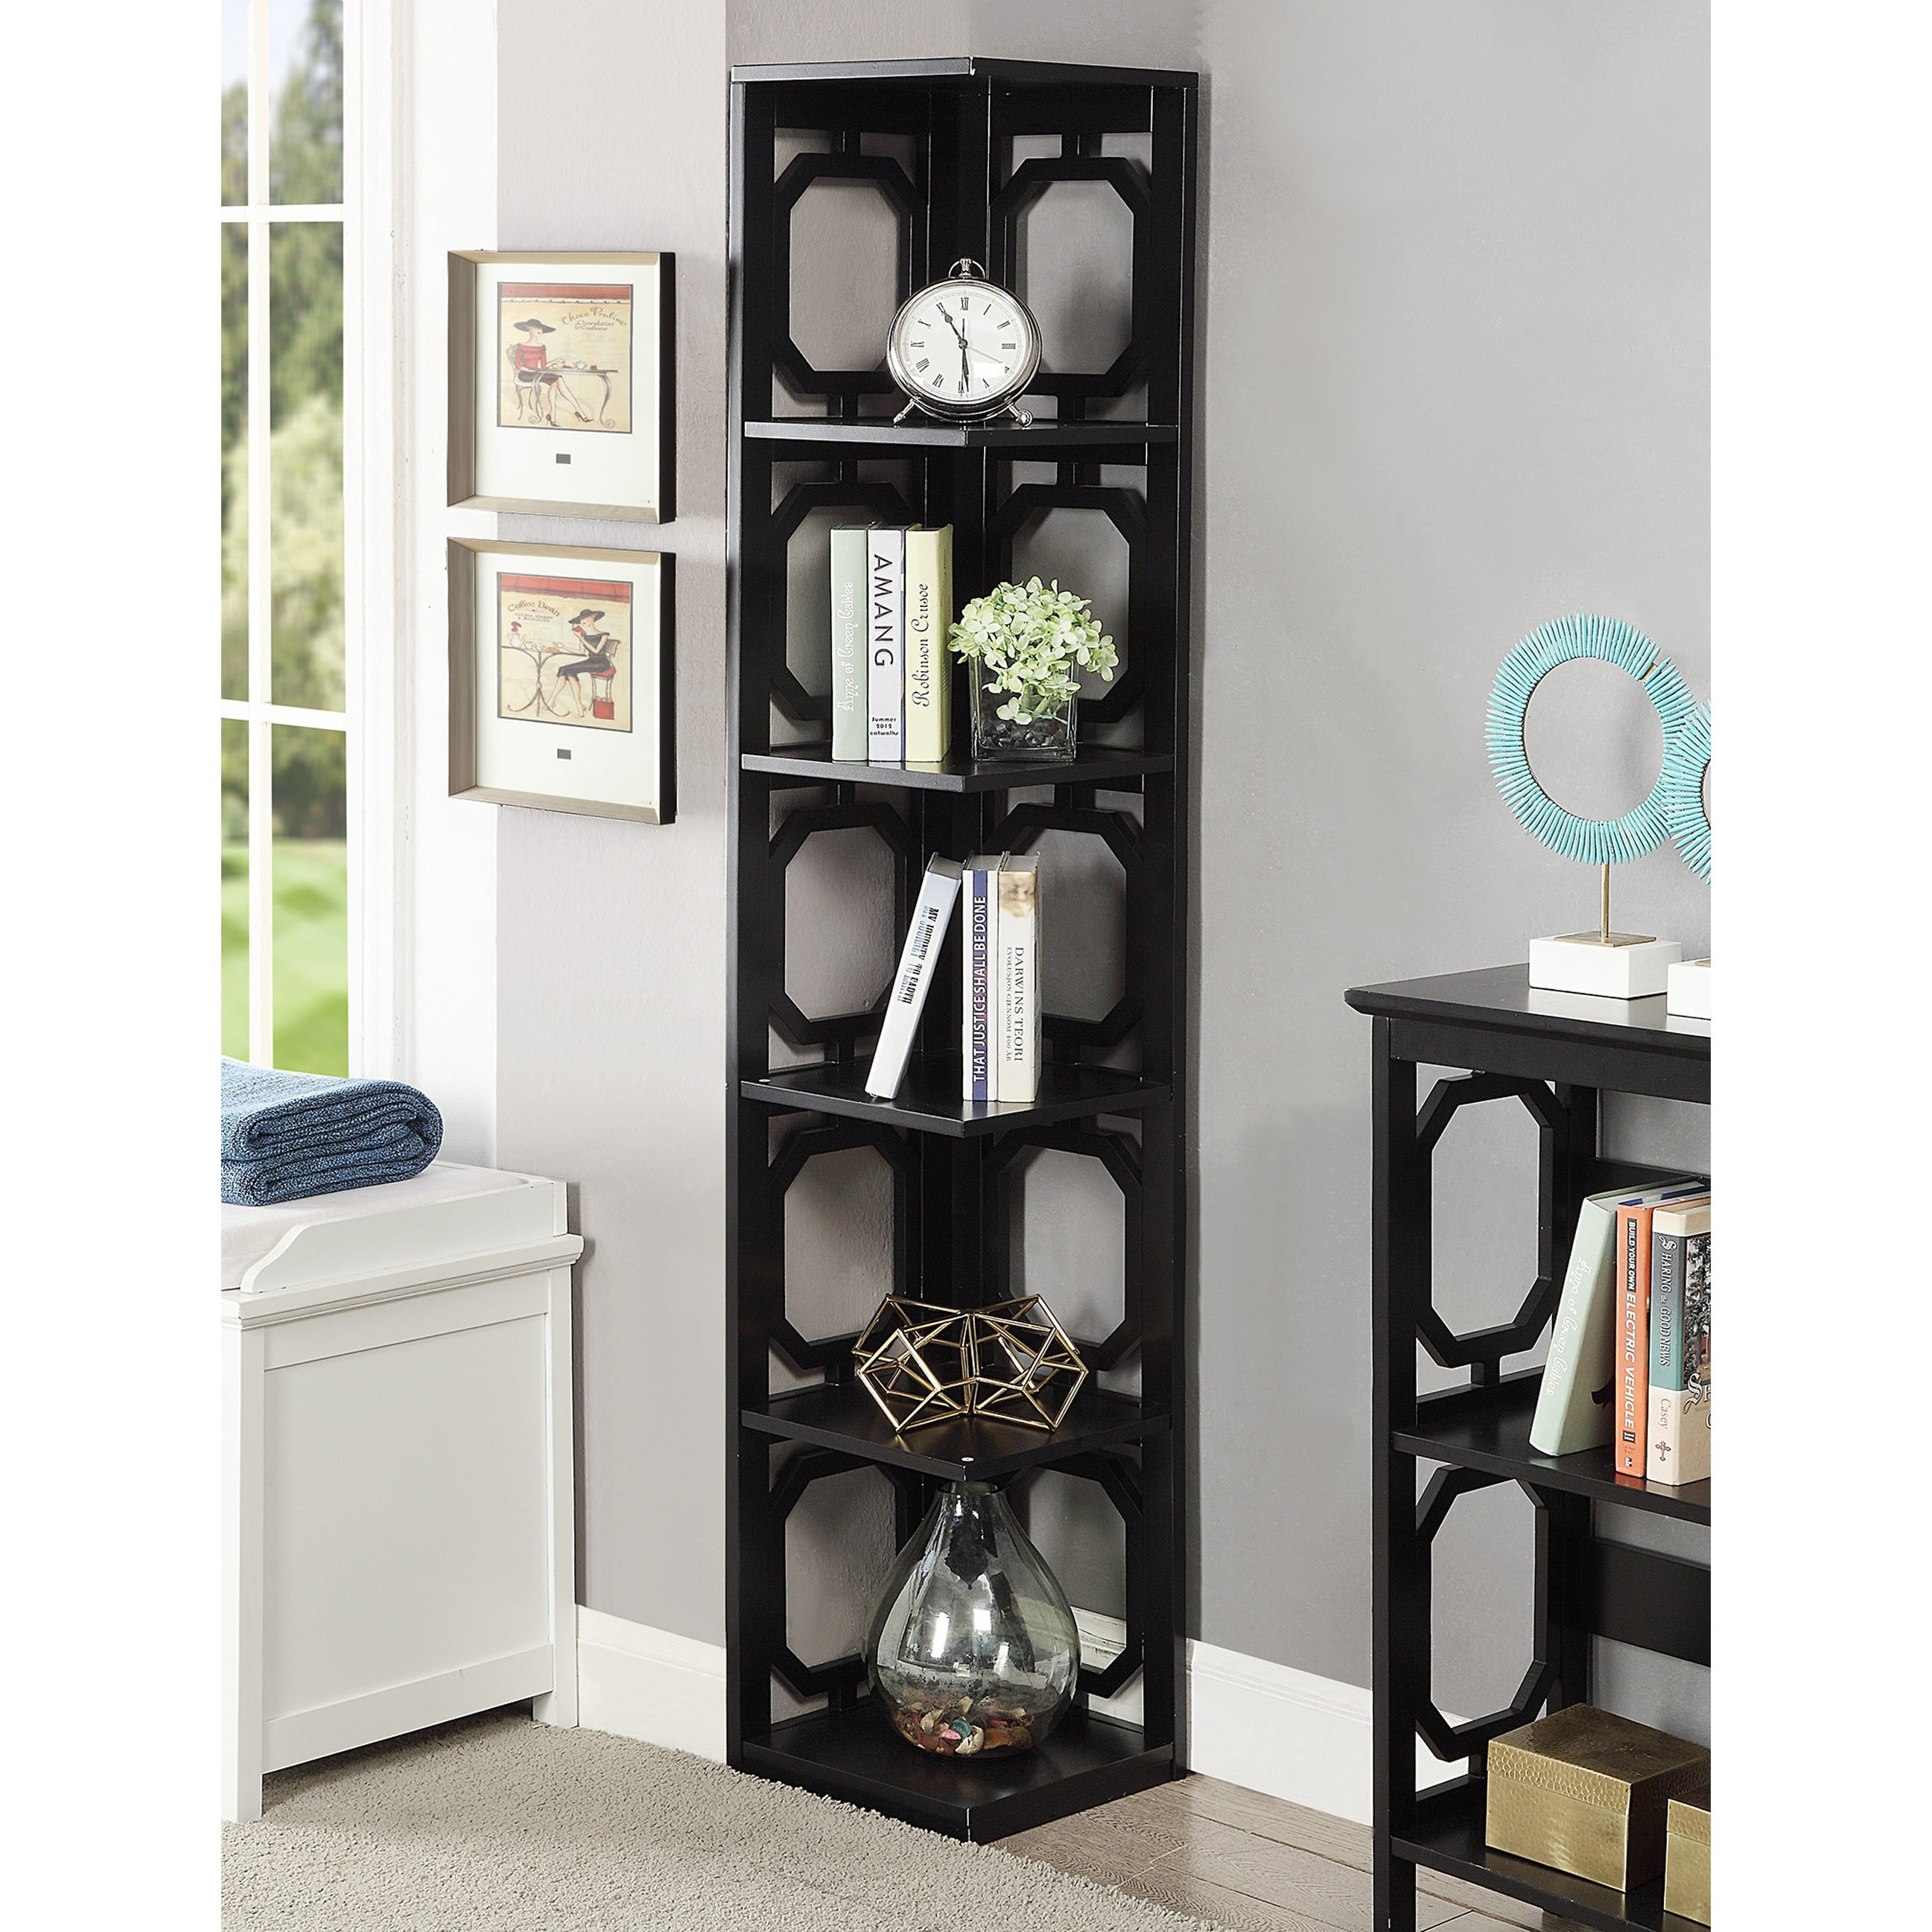 Porch & Den Bywater Lesseps 5 Tier Corner Bookcase  Free